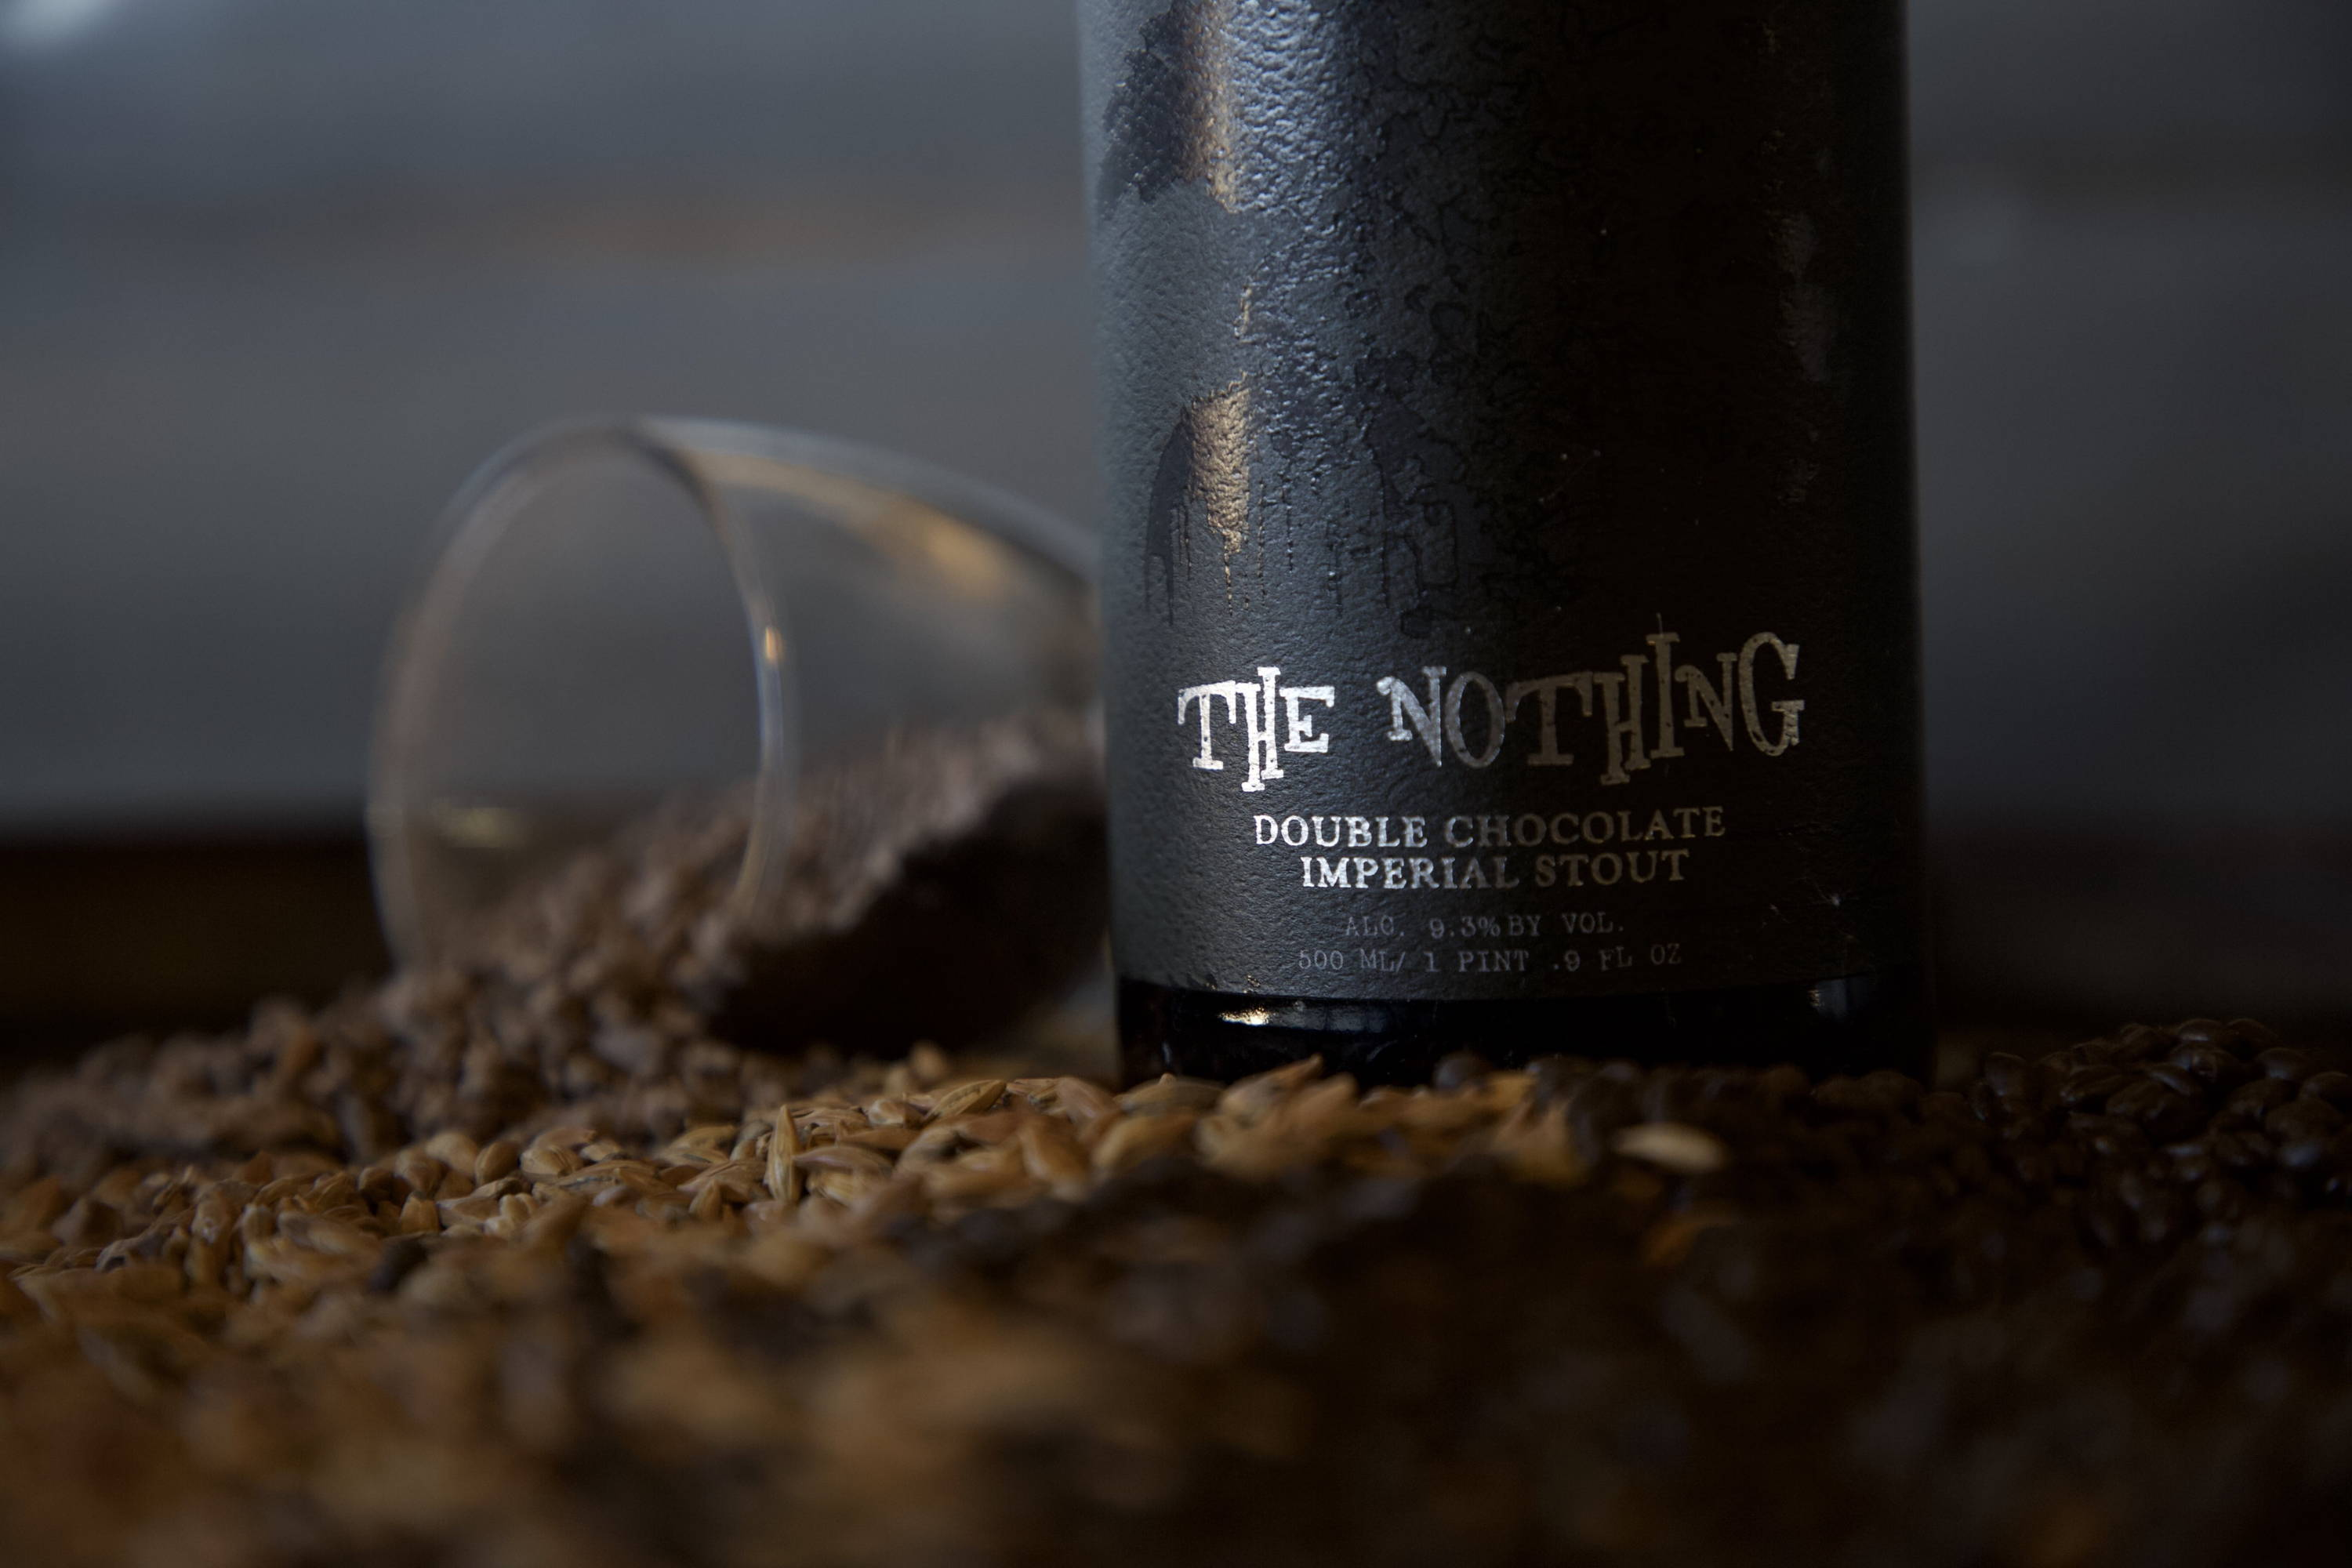 a bottle of the nothing is resting ni a pile of chocolate malts